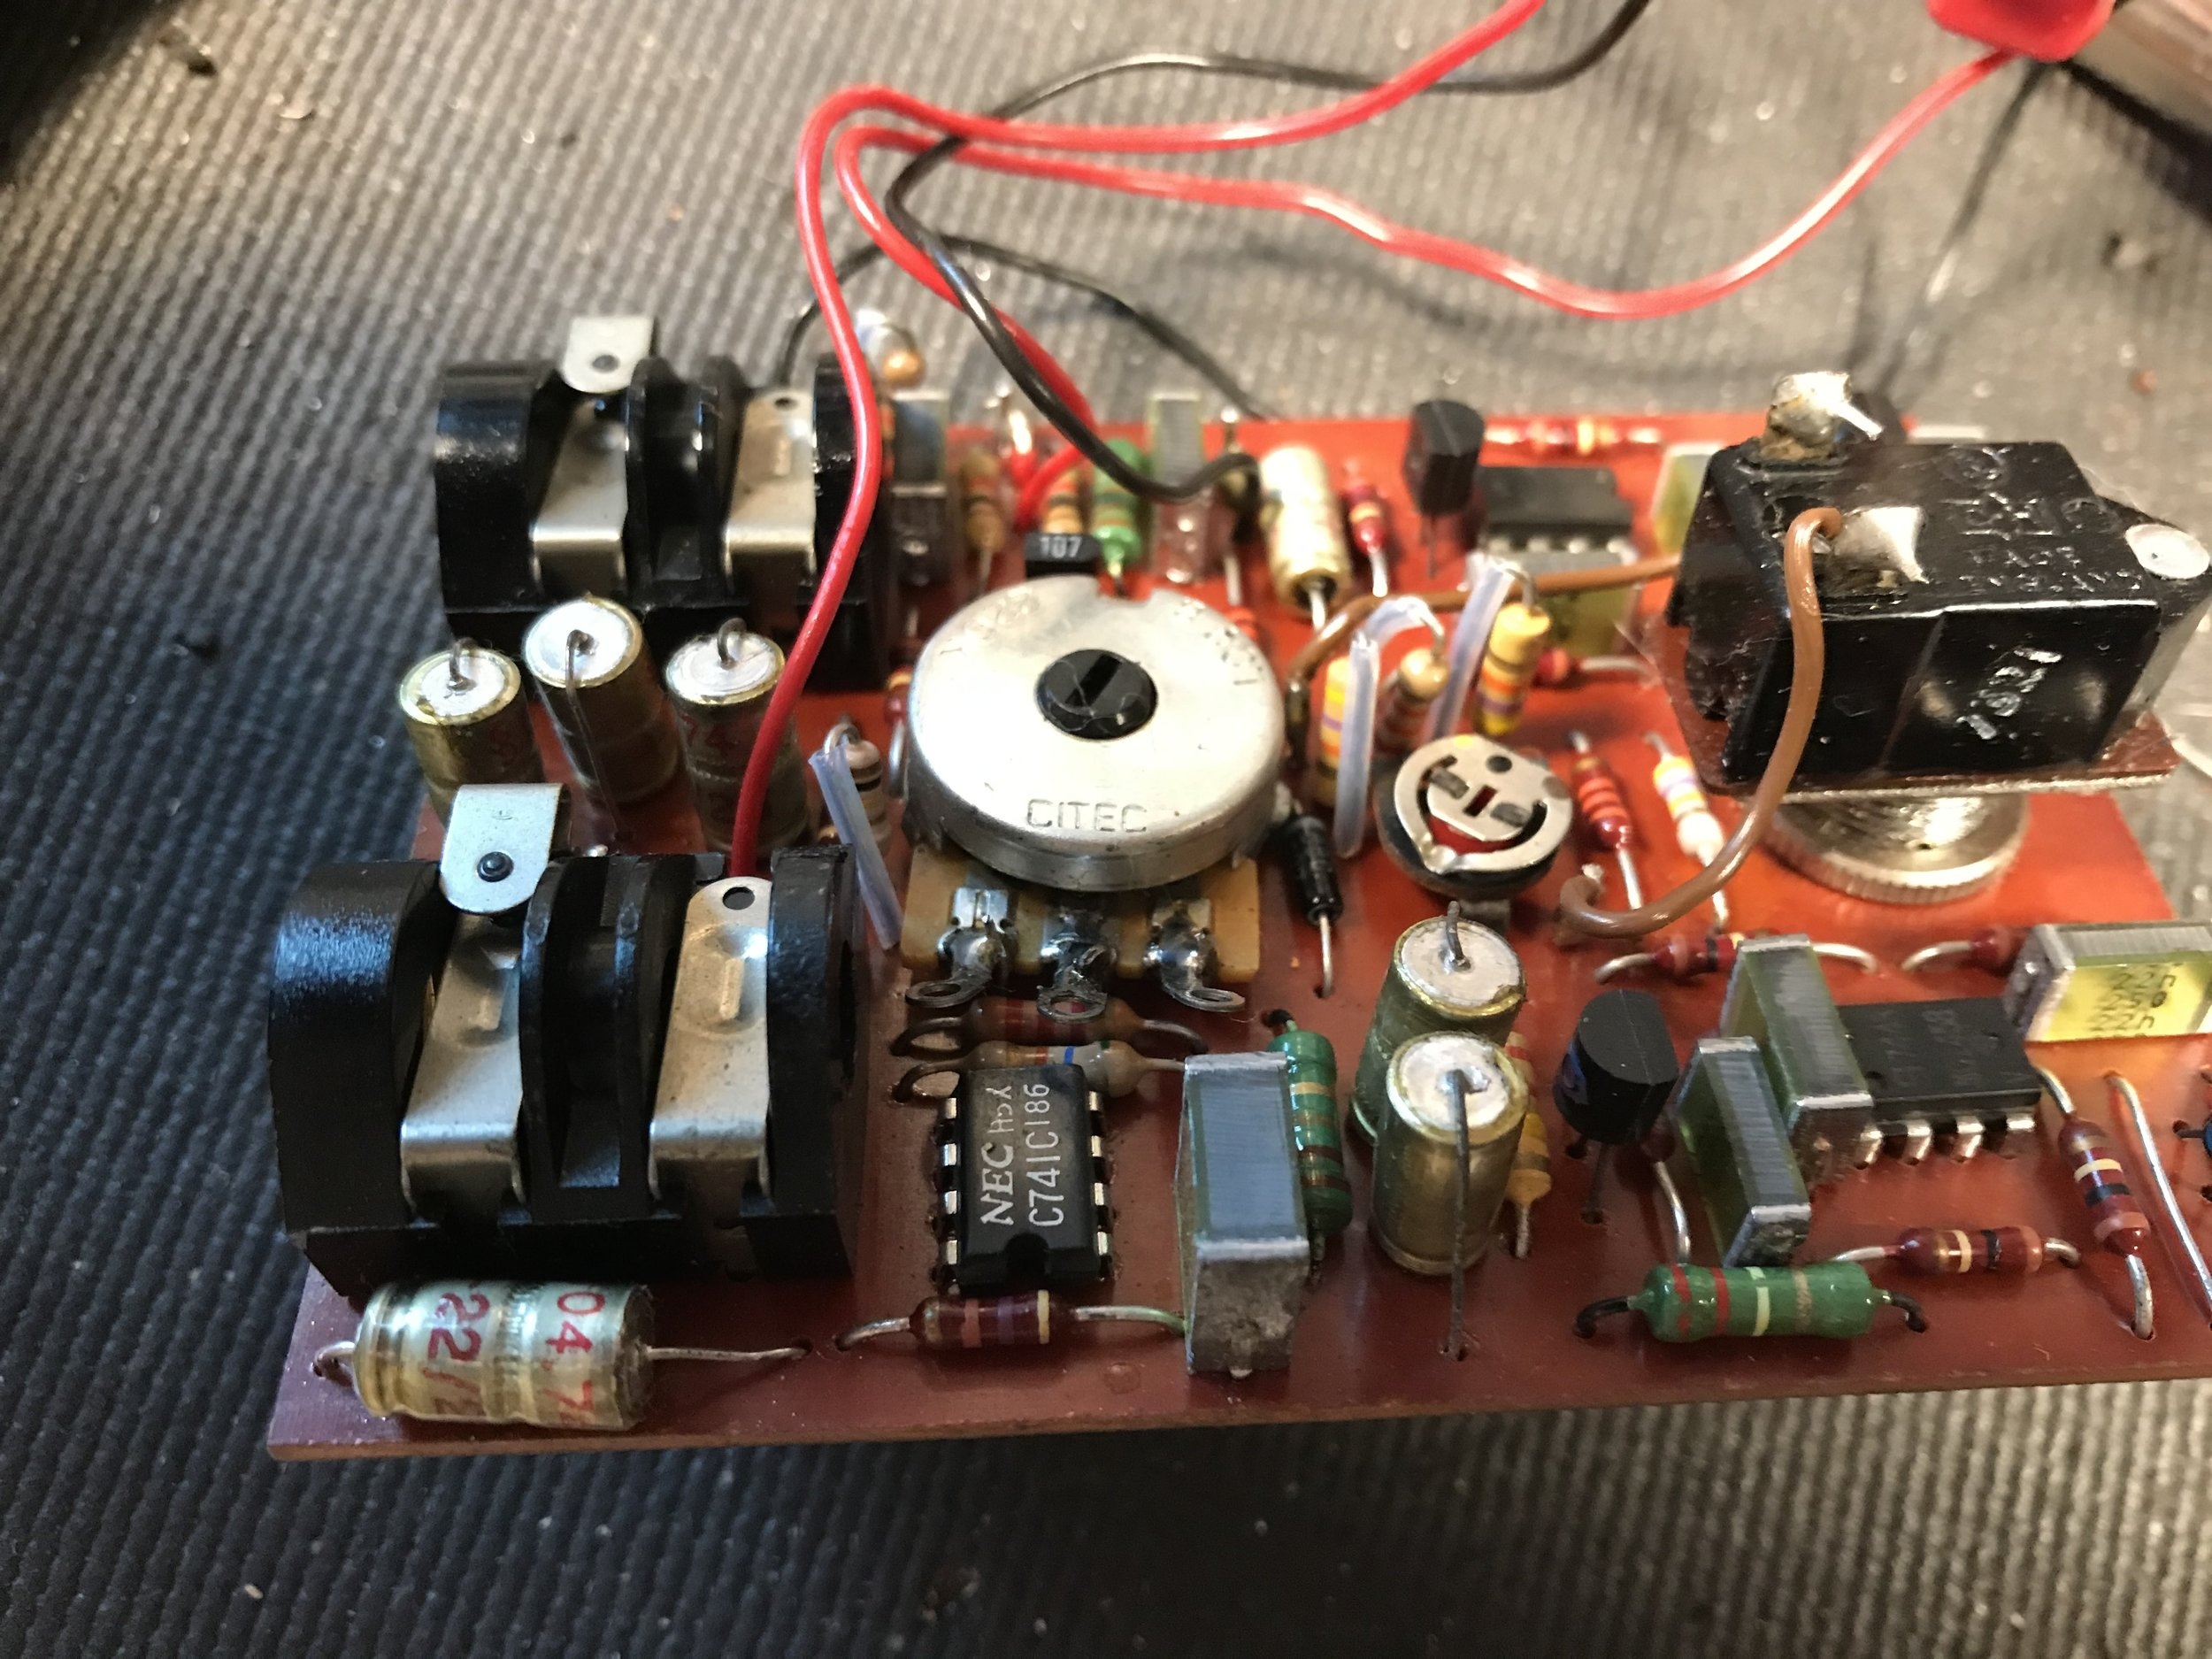 Can My Guitar Pedals Be Repaired? | Hochstrasser Electronics